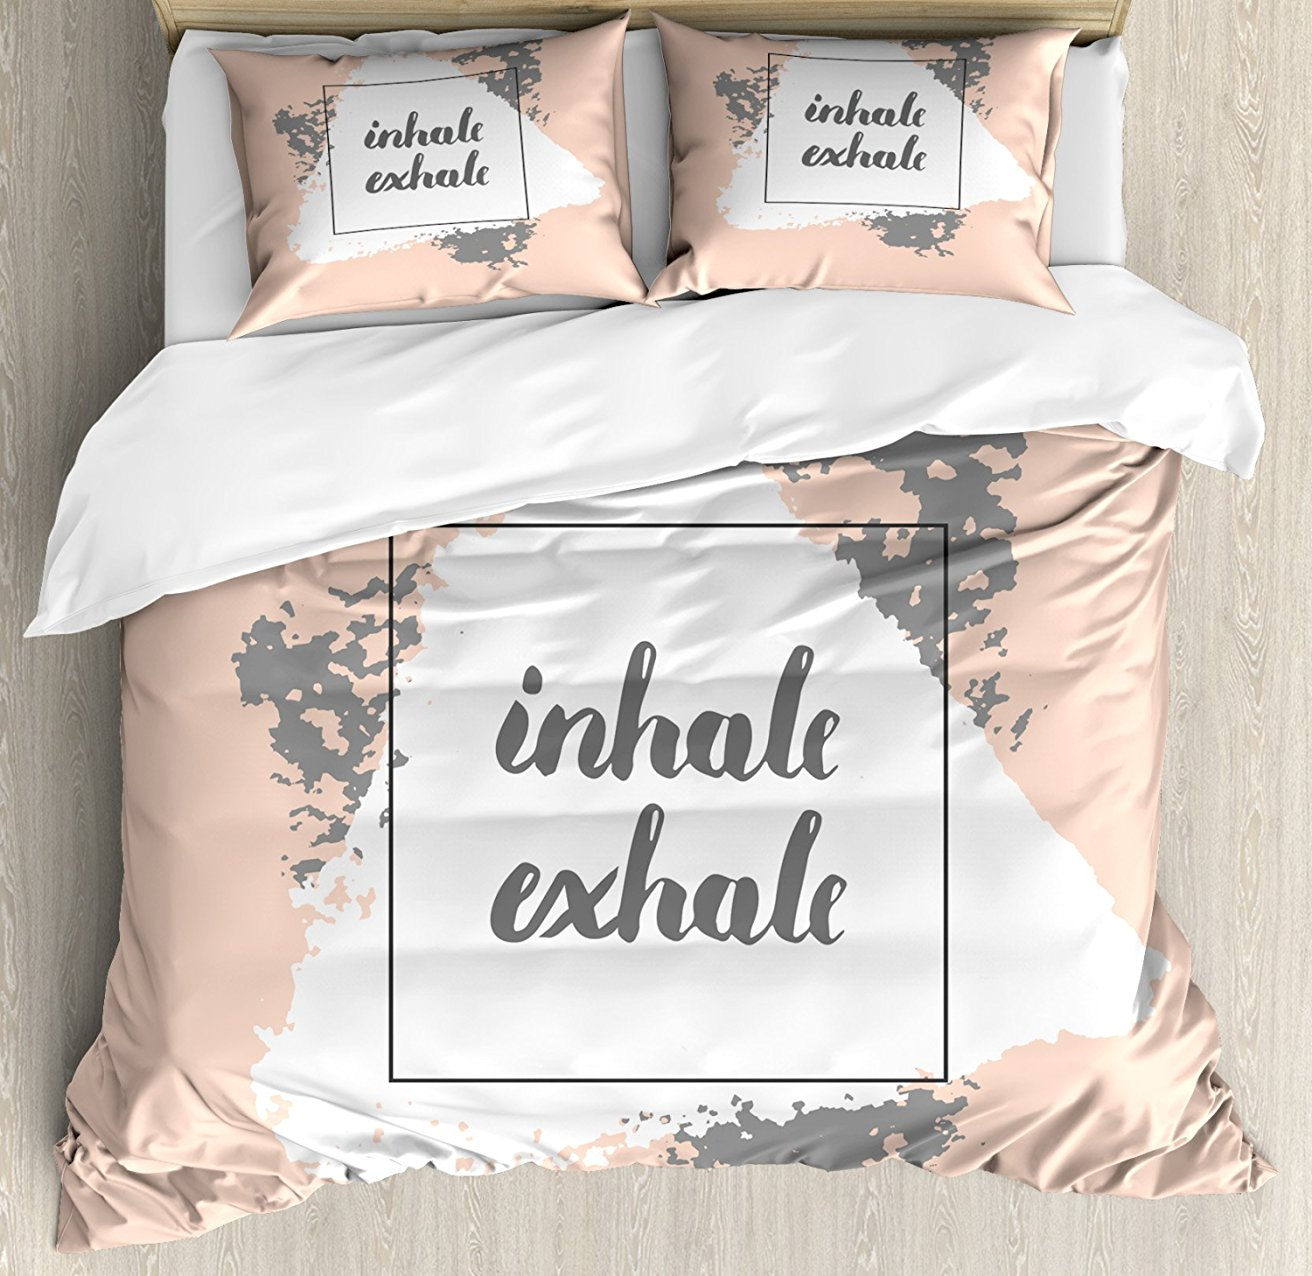 Inhaler Exhale housse de couette ensemble Grunge Paintbrush motivation Sports et Zen Message doux motif décoratif 4 pièces ensemble de literie